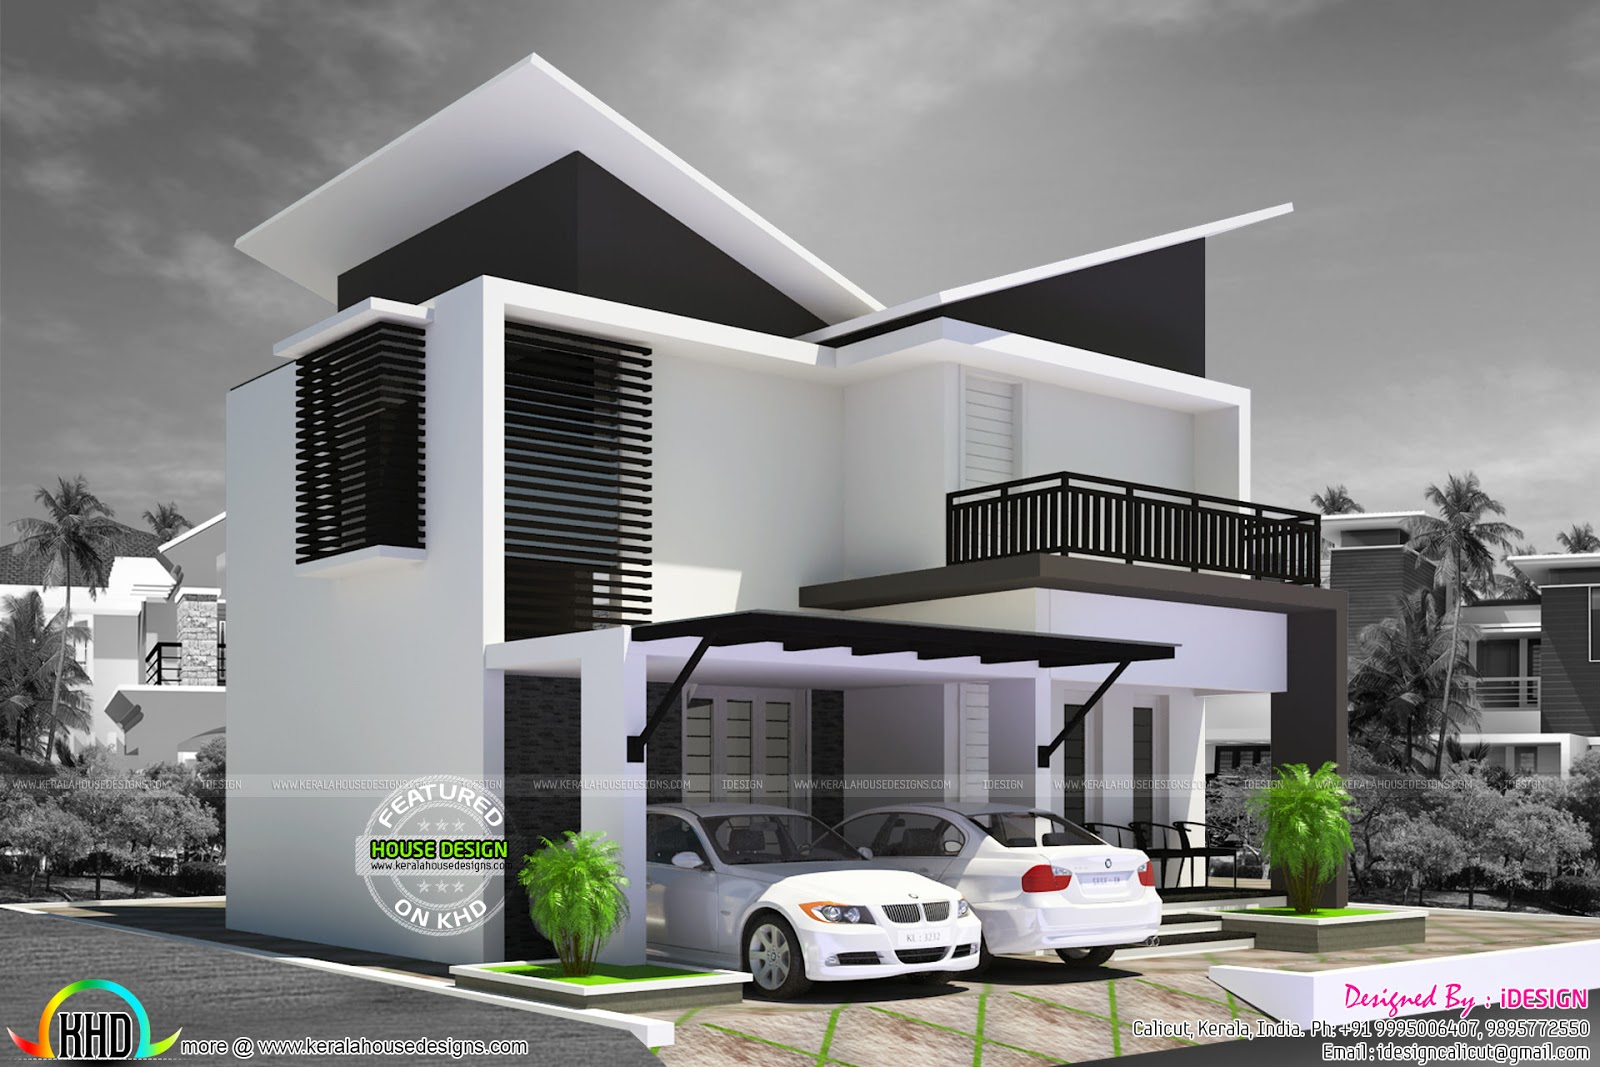 house renovation plan contemporary style kerala home design first floor 700 sq ft total area 1626 sq ft no of bedrooms 3 design style contemporray slanting roof renovation cost 10 lakh 15 000